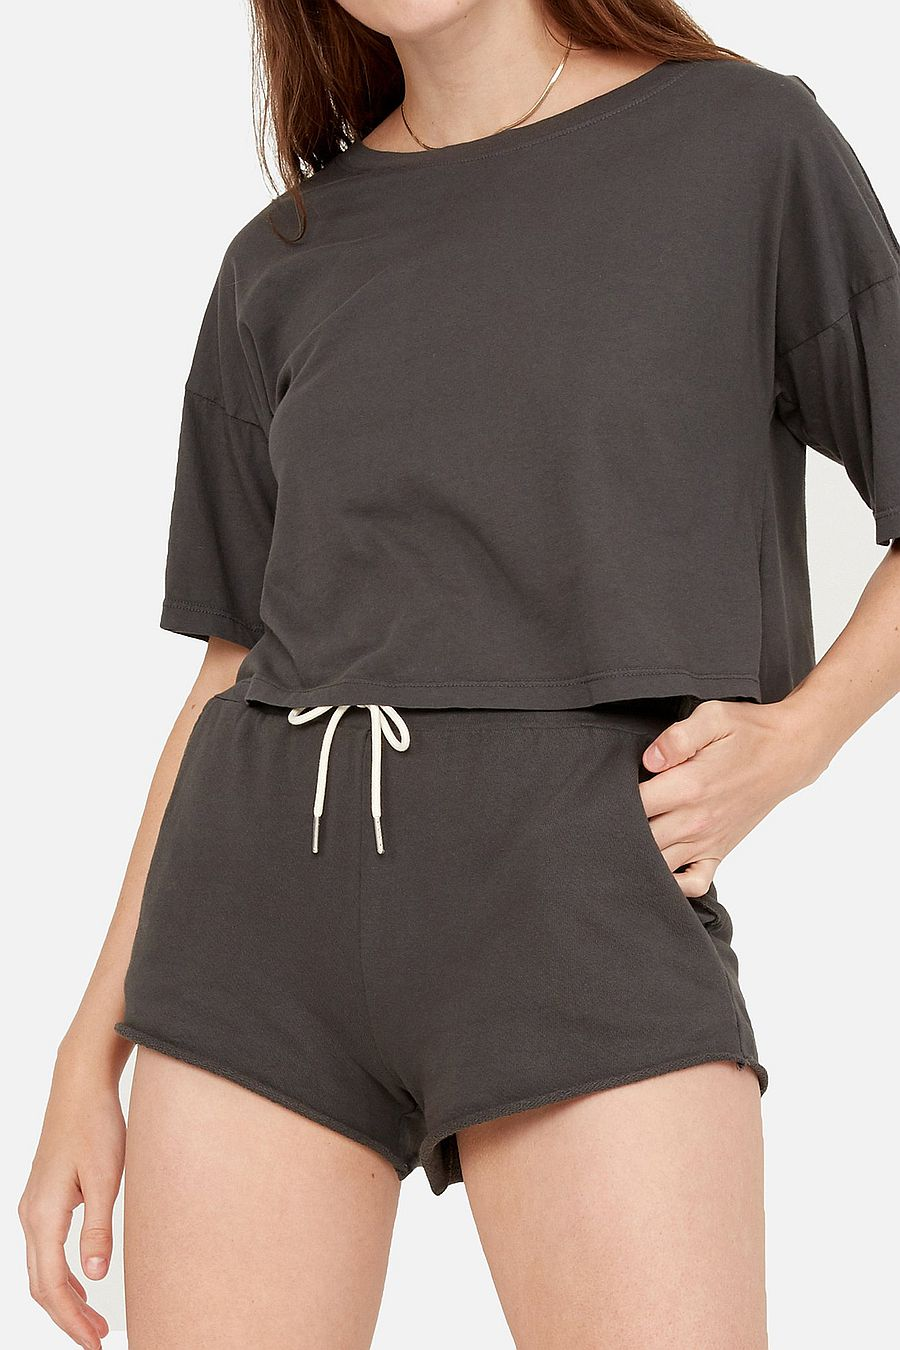 MATE The Label Organic Terry Lounge Short - CHARCOAL